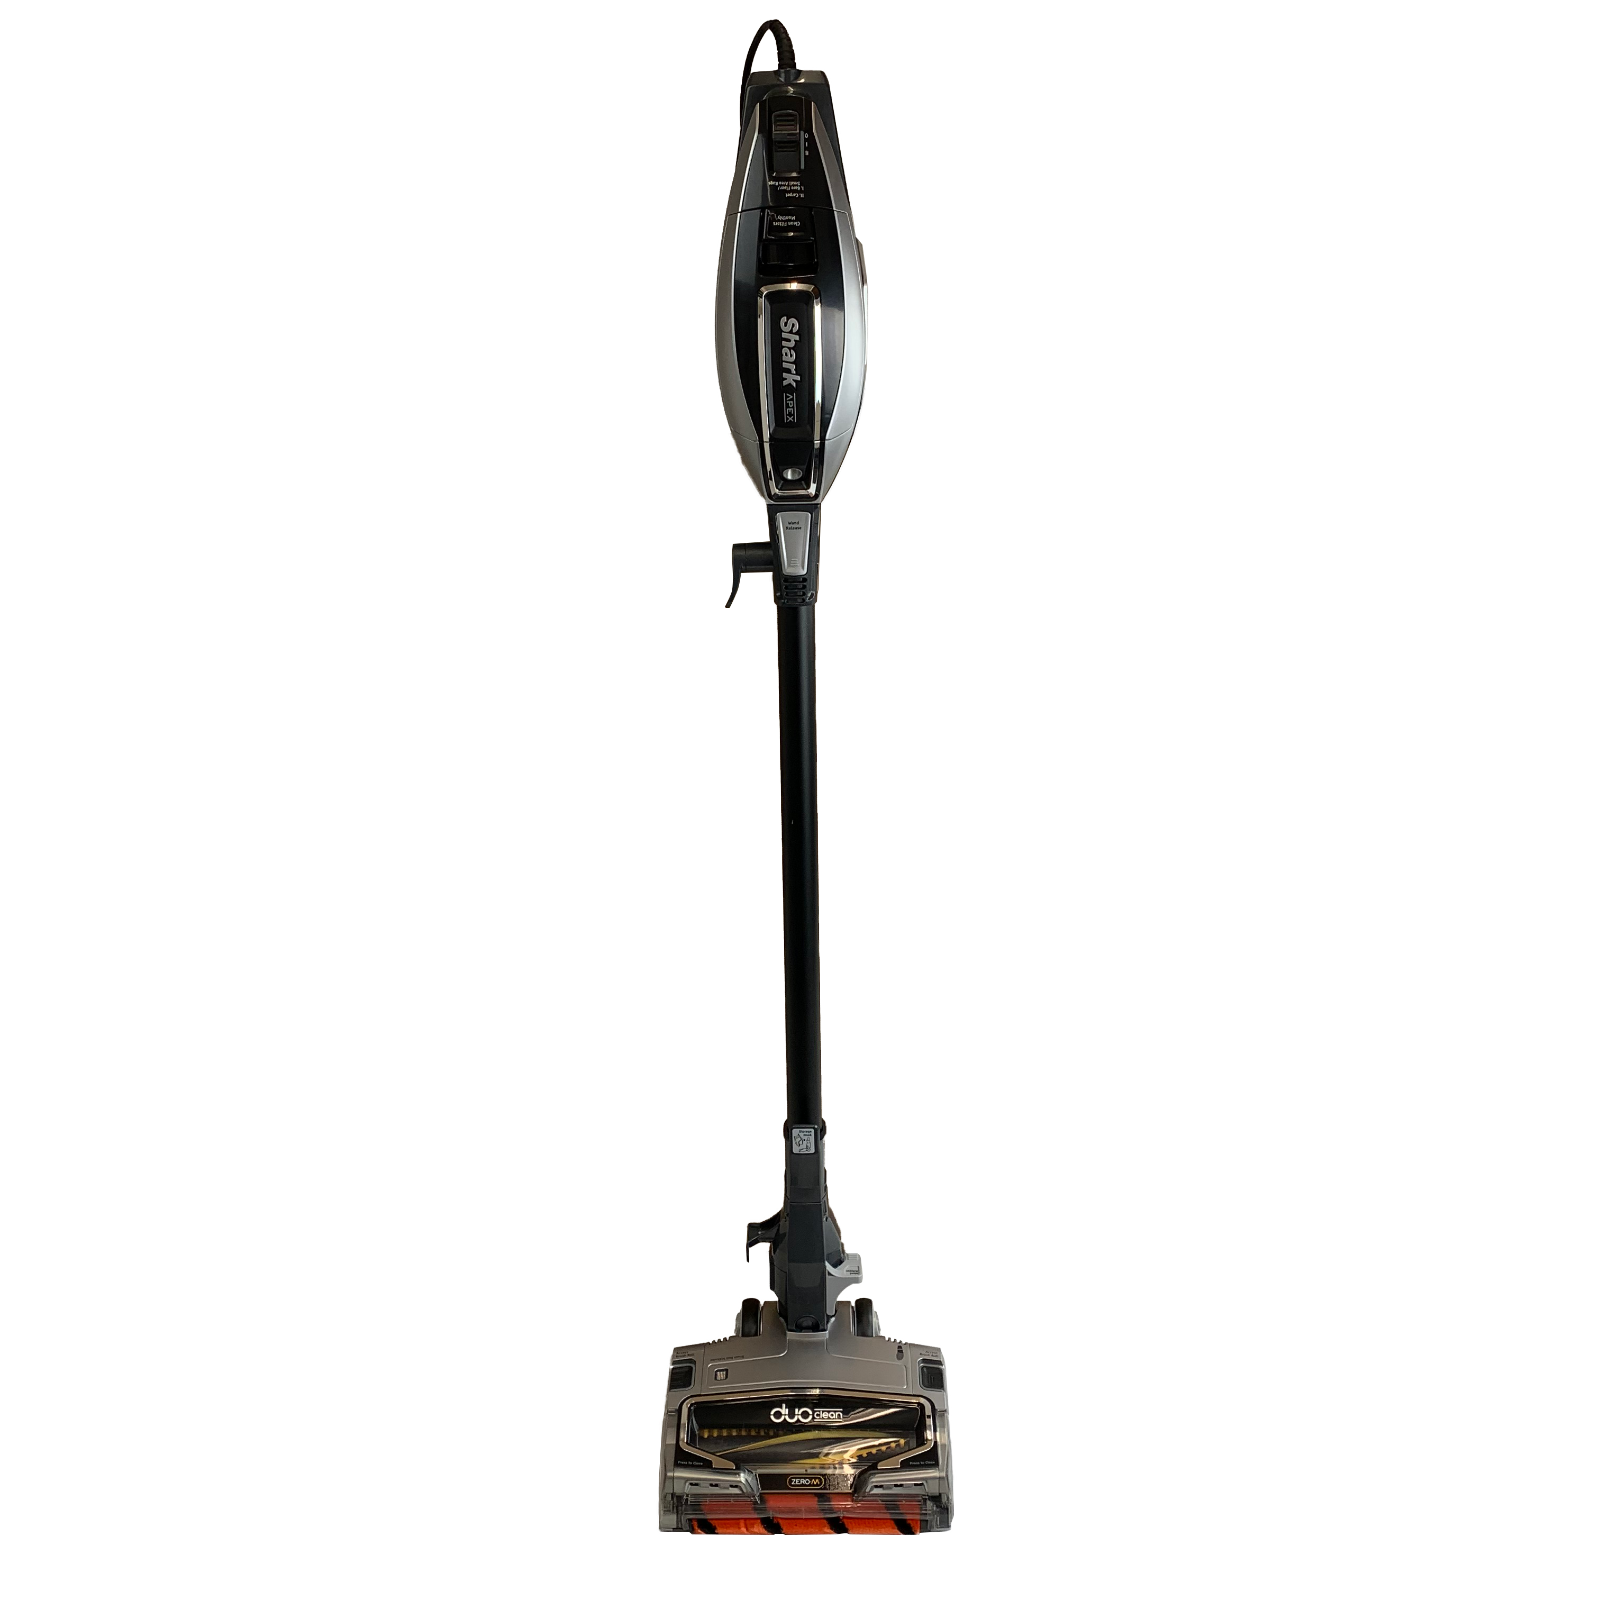 shark-apex-duoclean-vacuum-with-self-cleaning-brushroll-silver